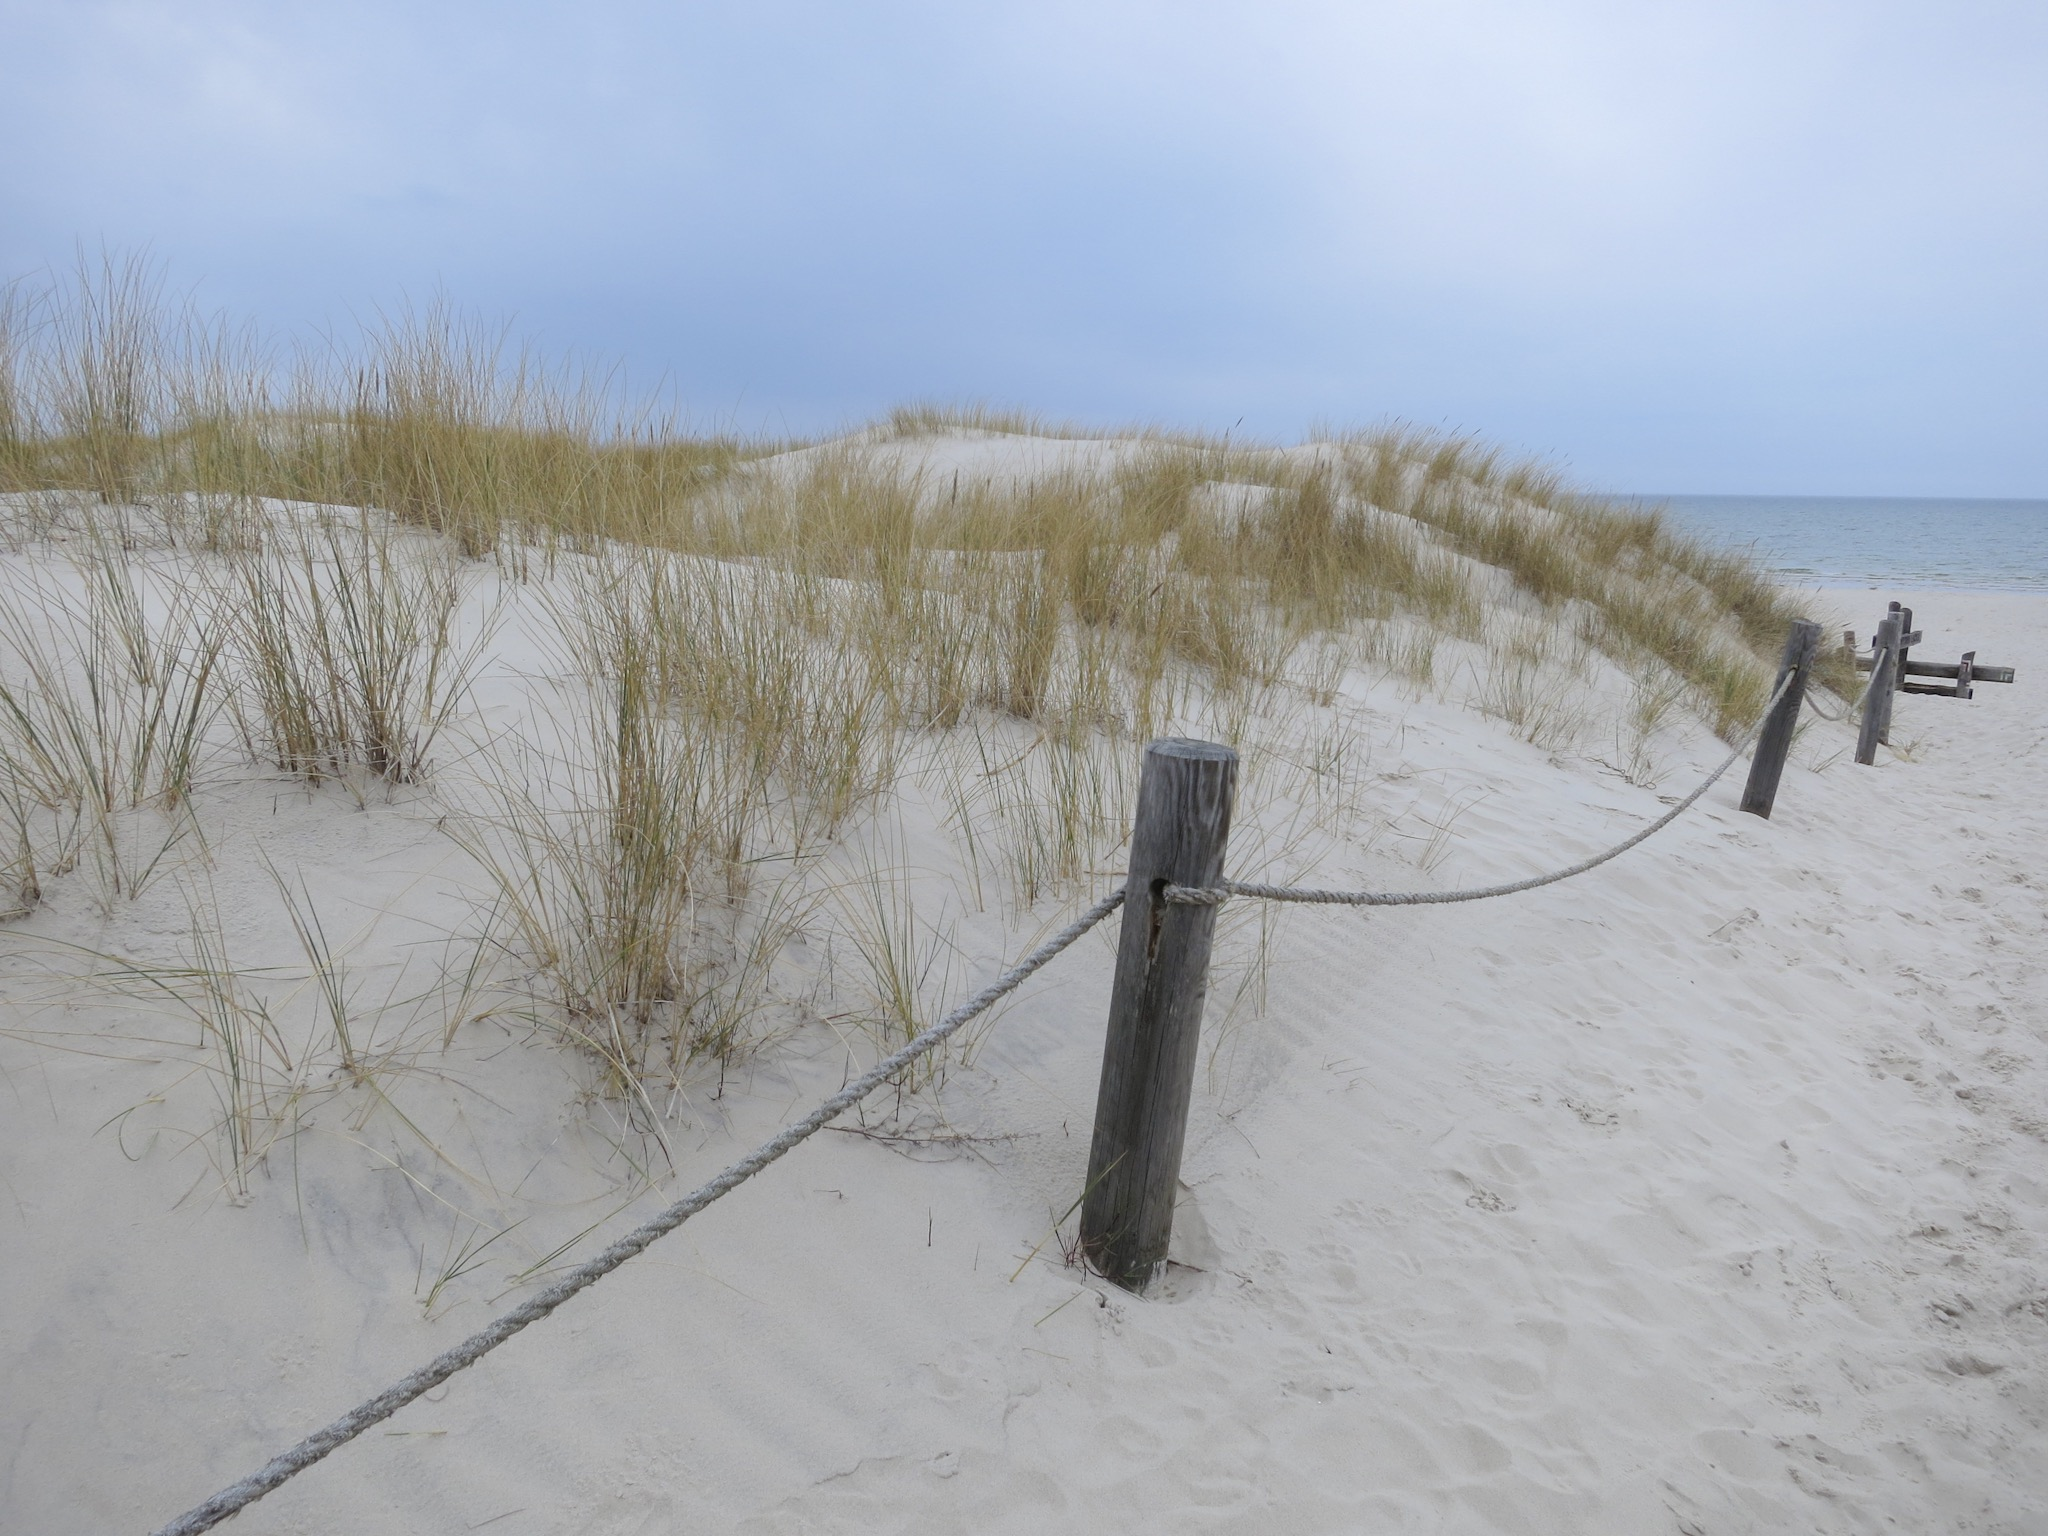 Path leading to the Baltic Sea on the Łackca Sand Dune In Słowiński National Park